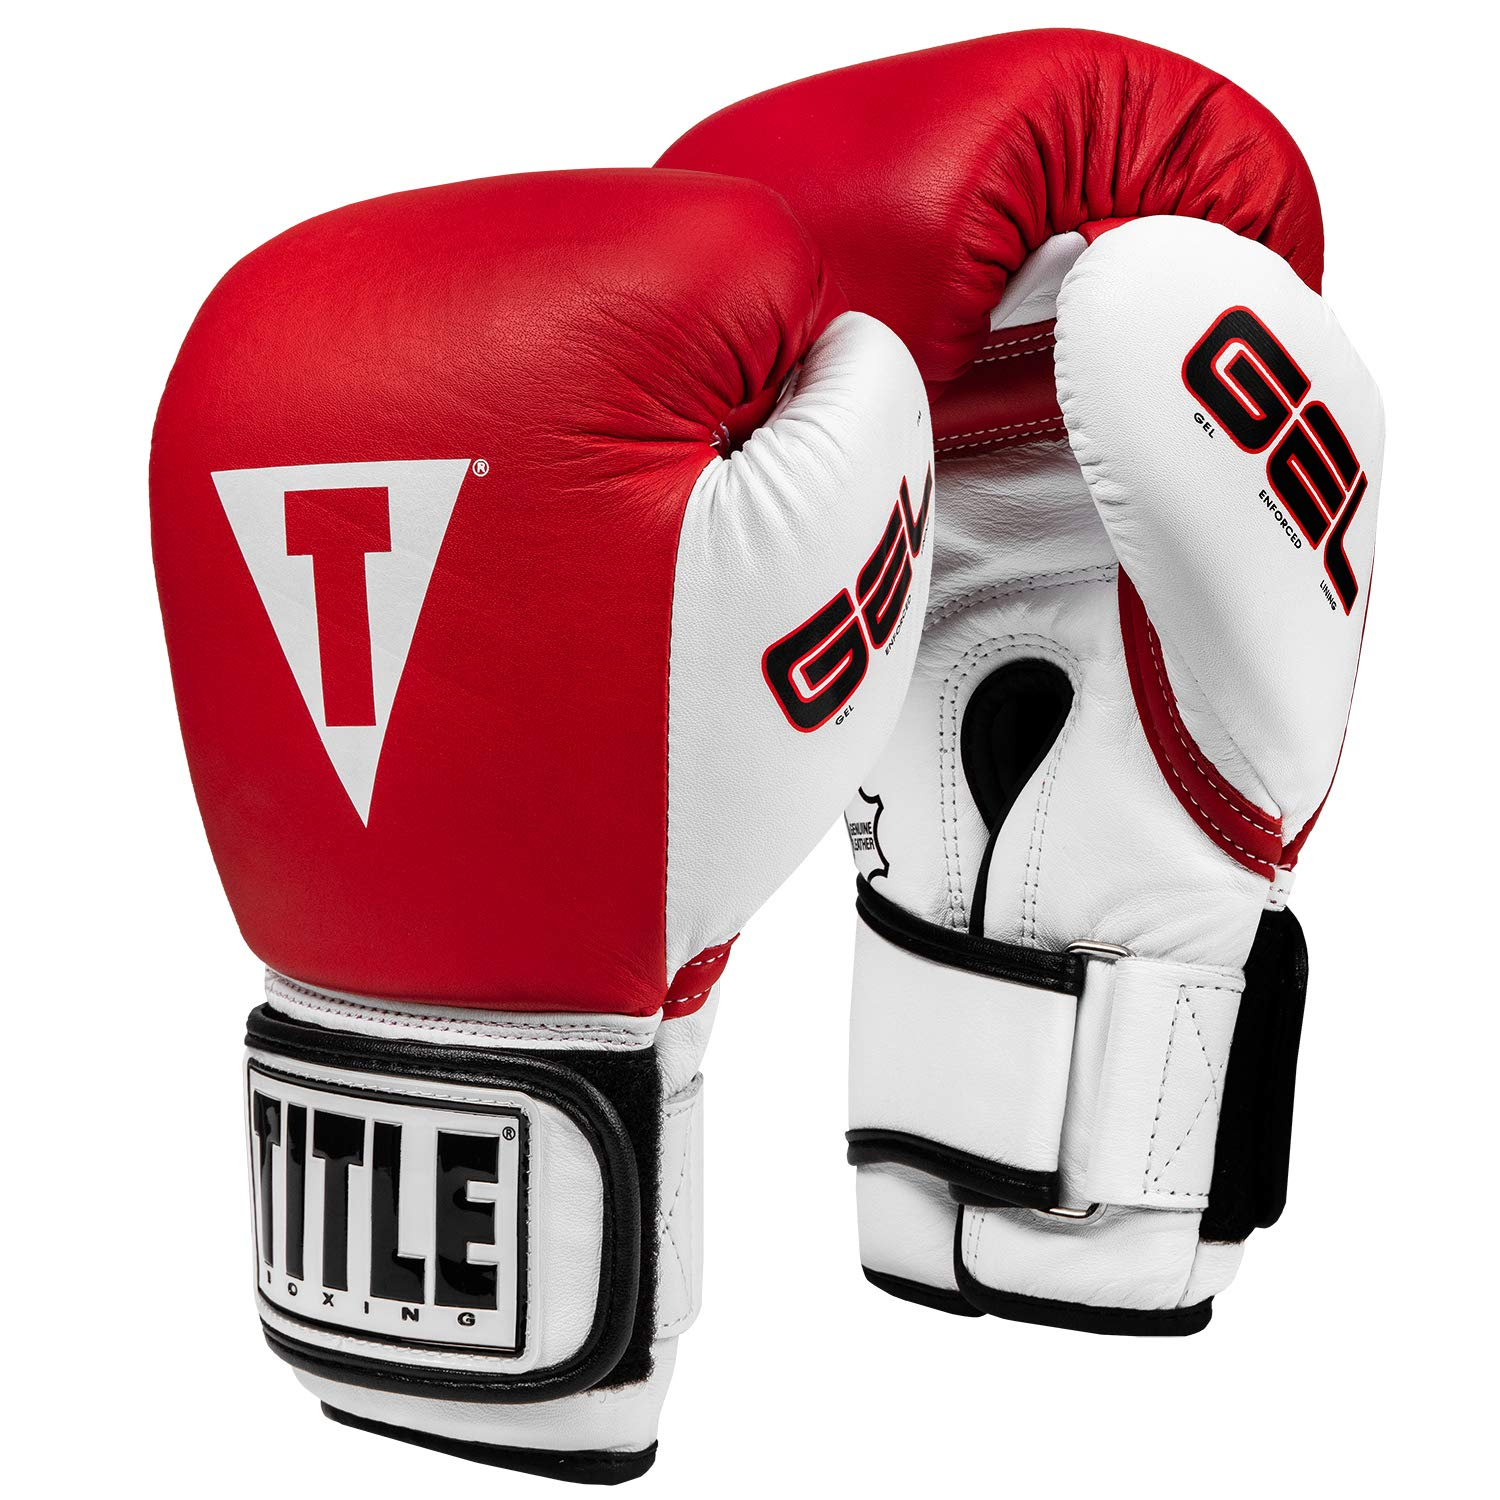 ae2955e062efb Amazon.com : Title Gel World Bag Gloves, Red, Medium : Training Boxing  Gloves : Sports & Outdoors